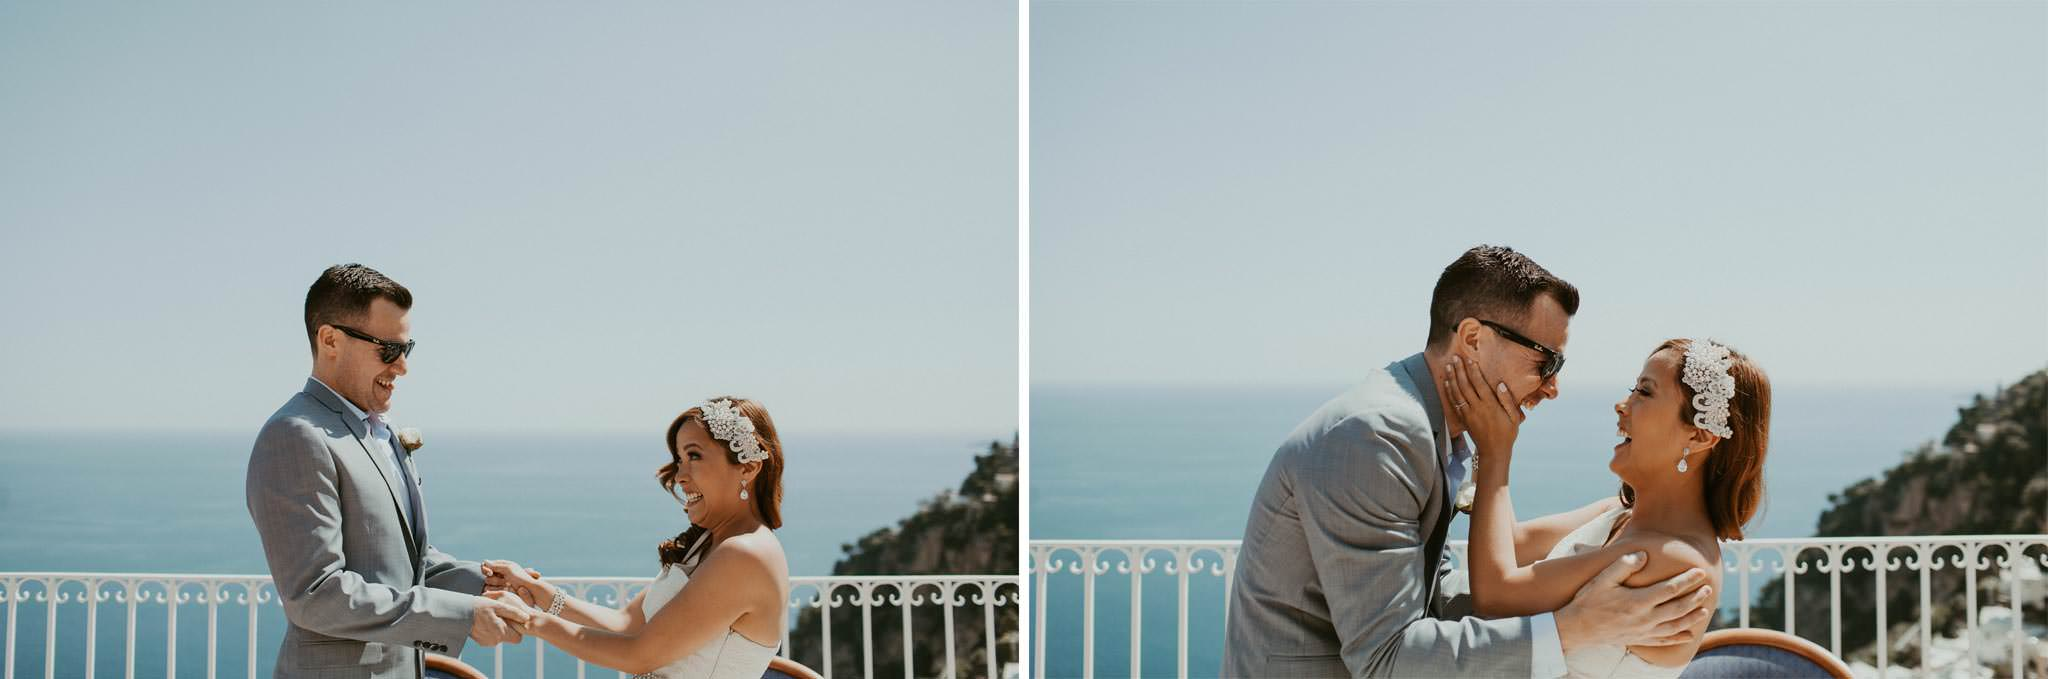 positano-wedding-photographer-044